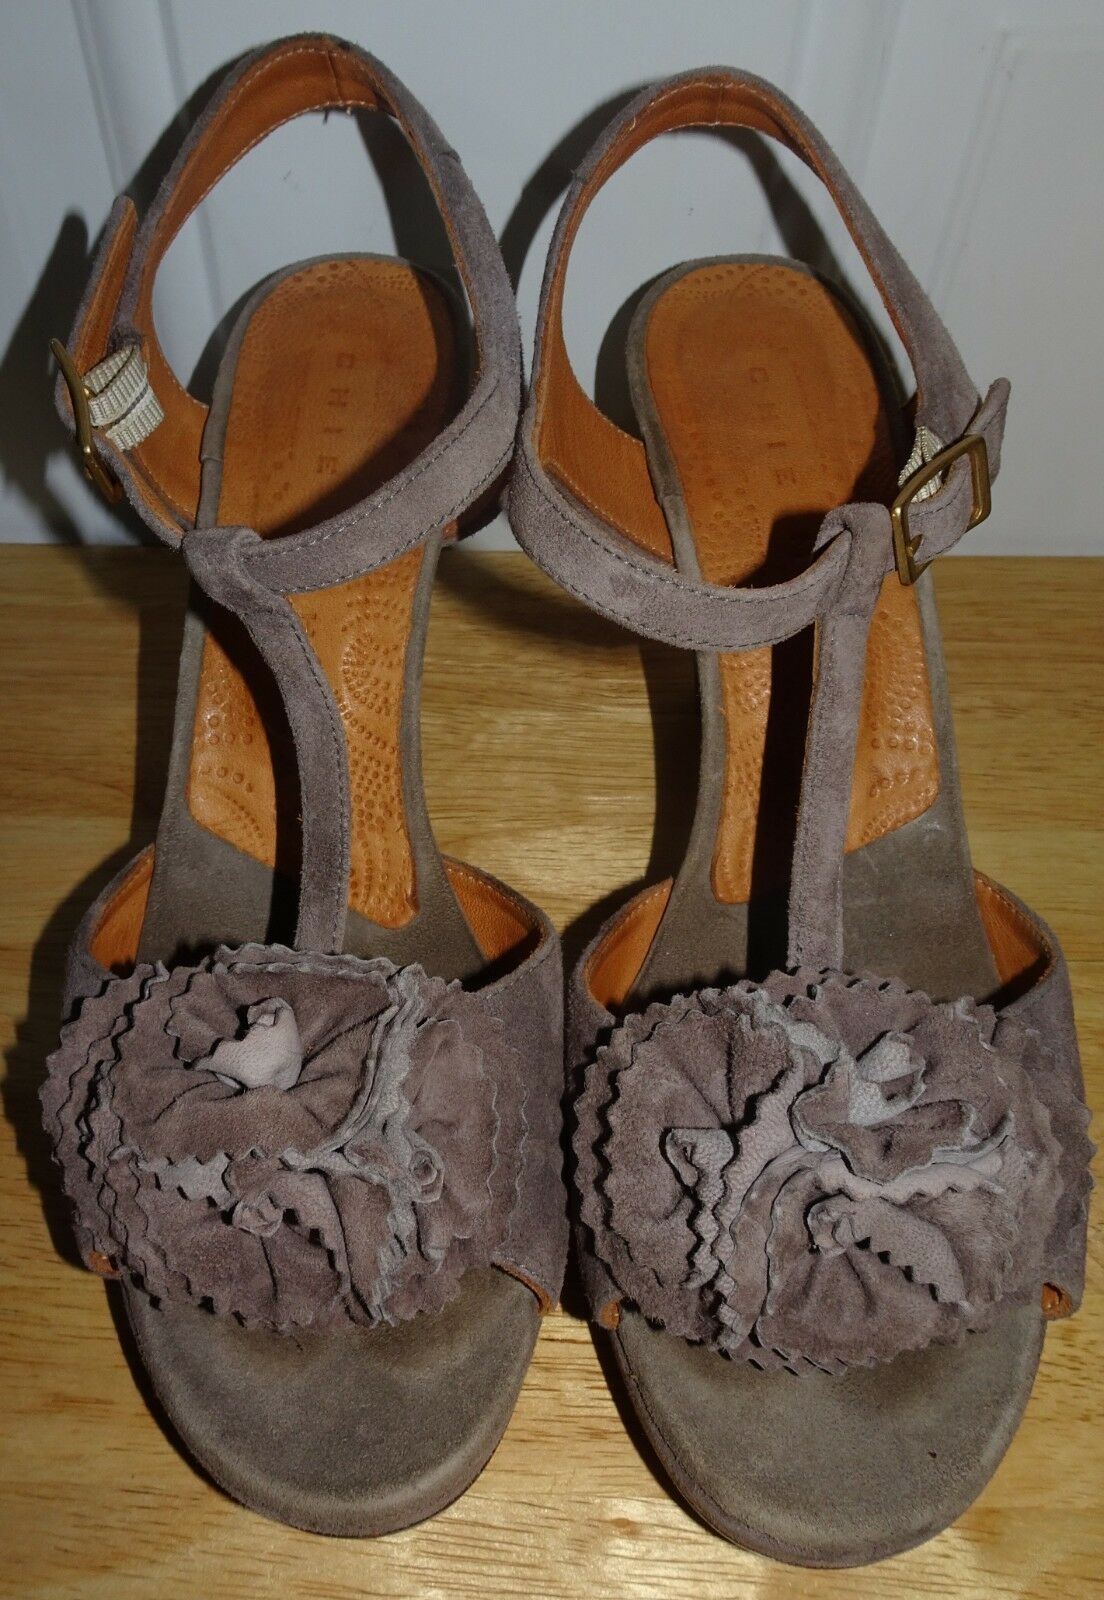 CHIE MIHARA TAUPE GRAY Schuhe STRAPPY HIGH HEEL SANDALS Schuhe GRAY SZ 37.5 249d21